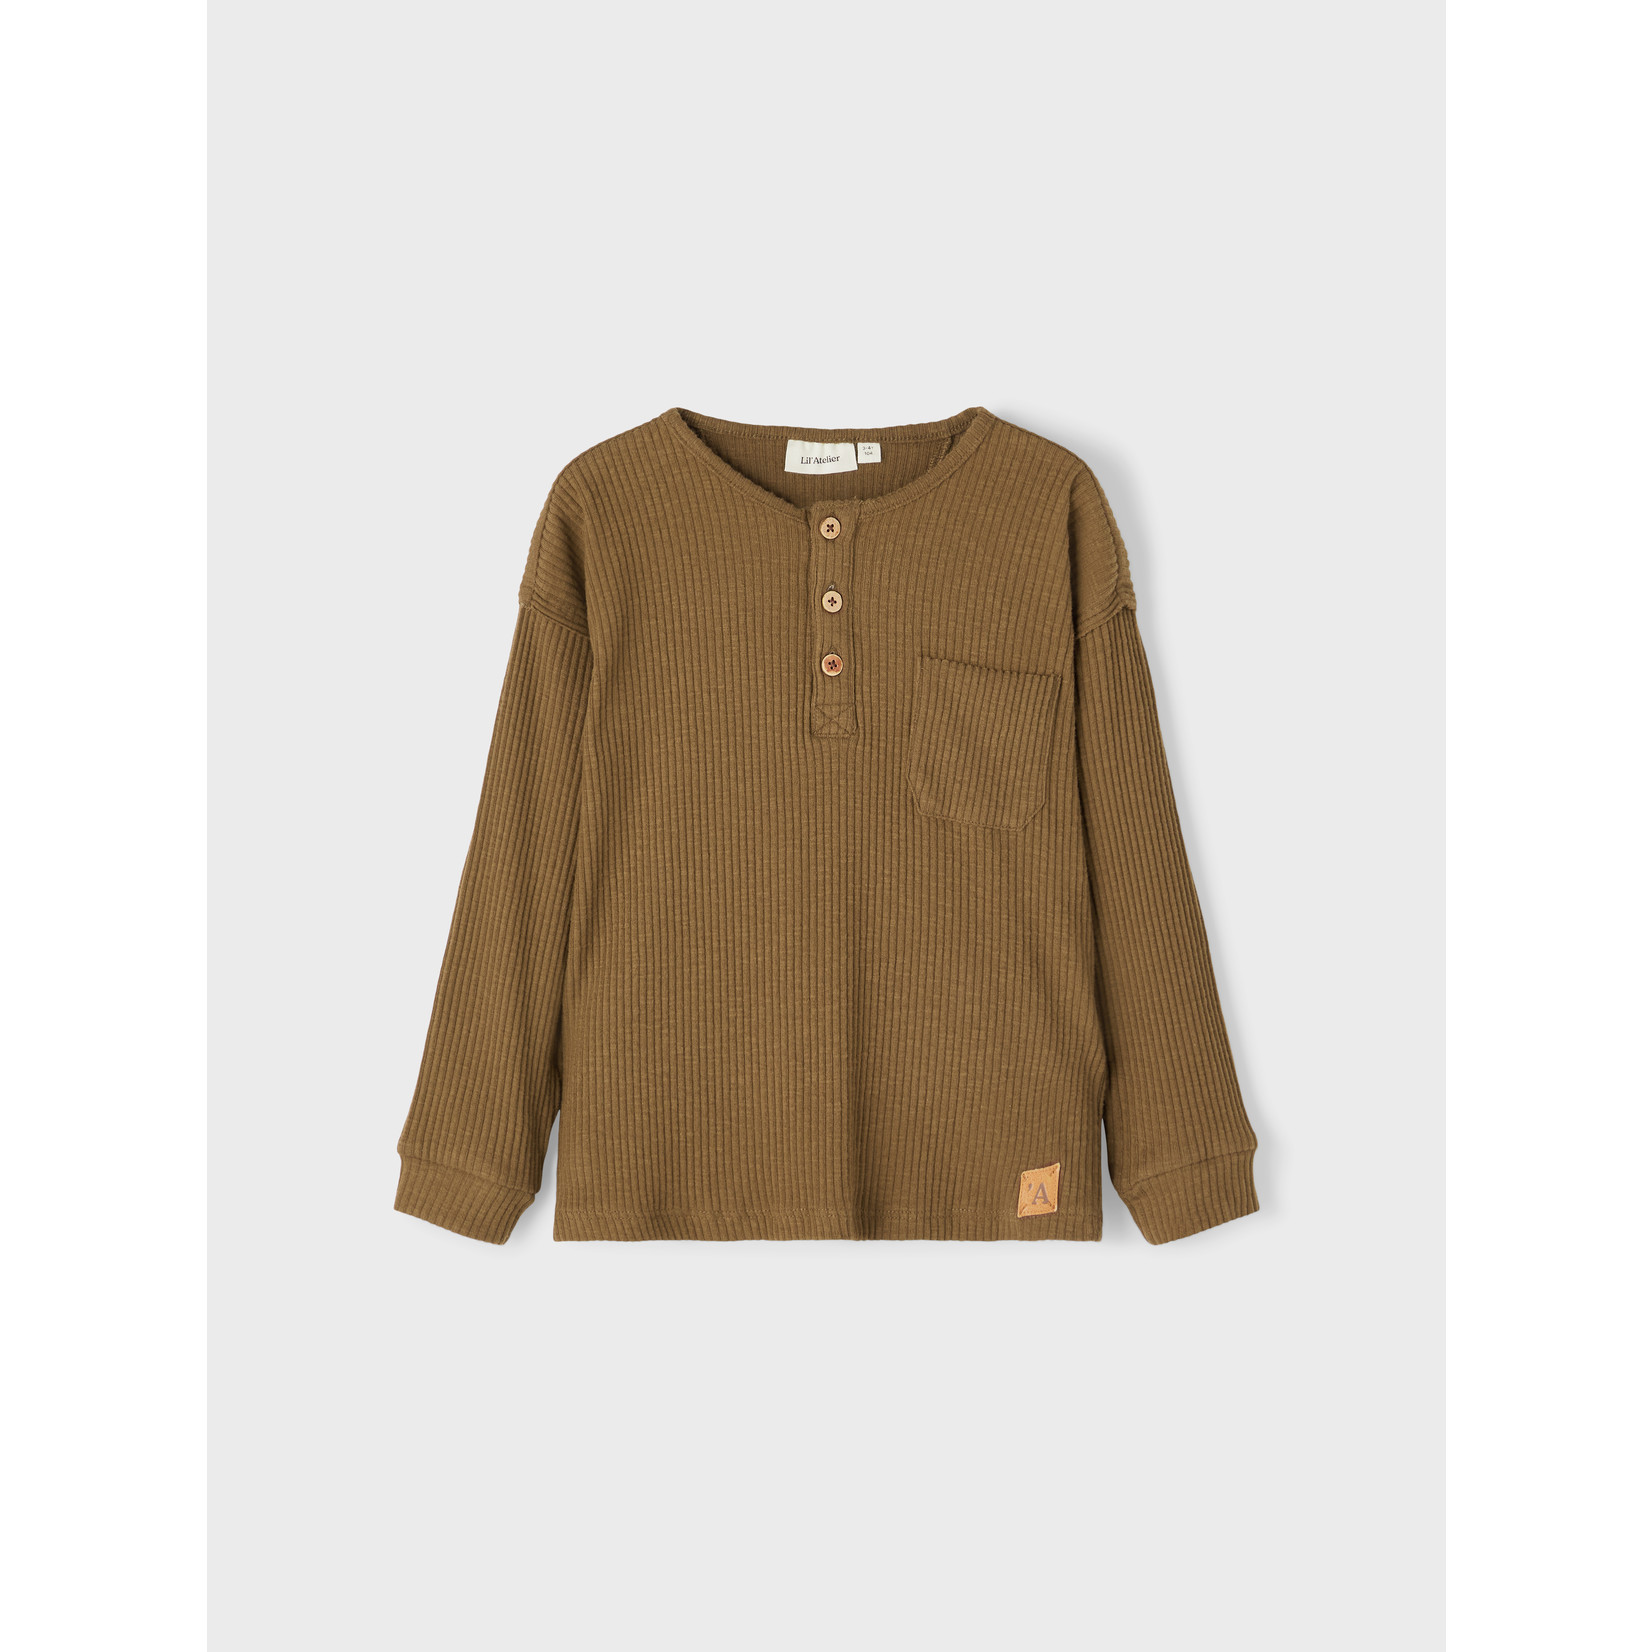 Lil Atelier Lil Atelier - NMMRAJO LS BOXY TOP LIL Otter